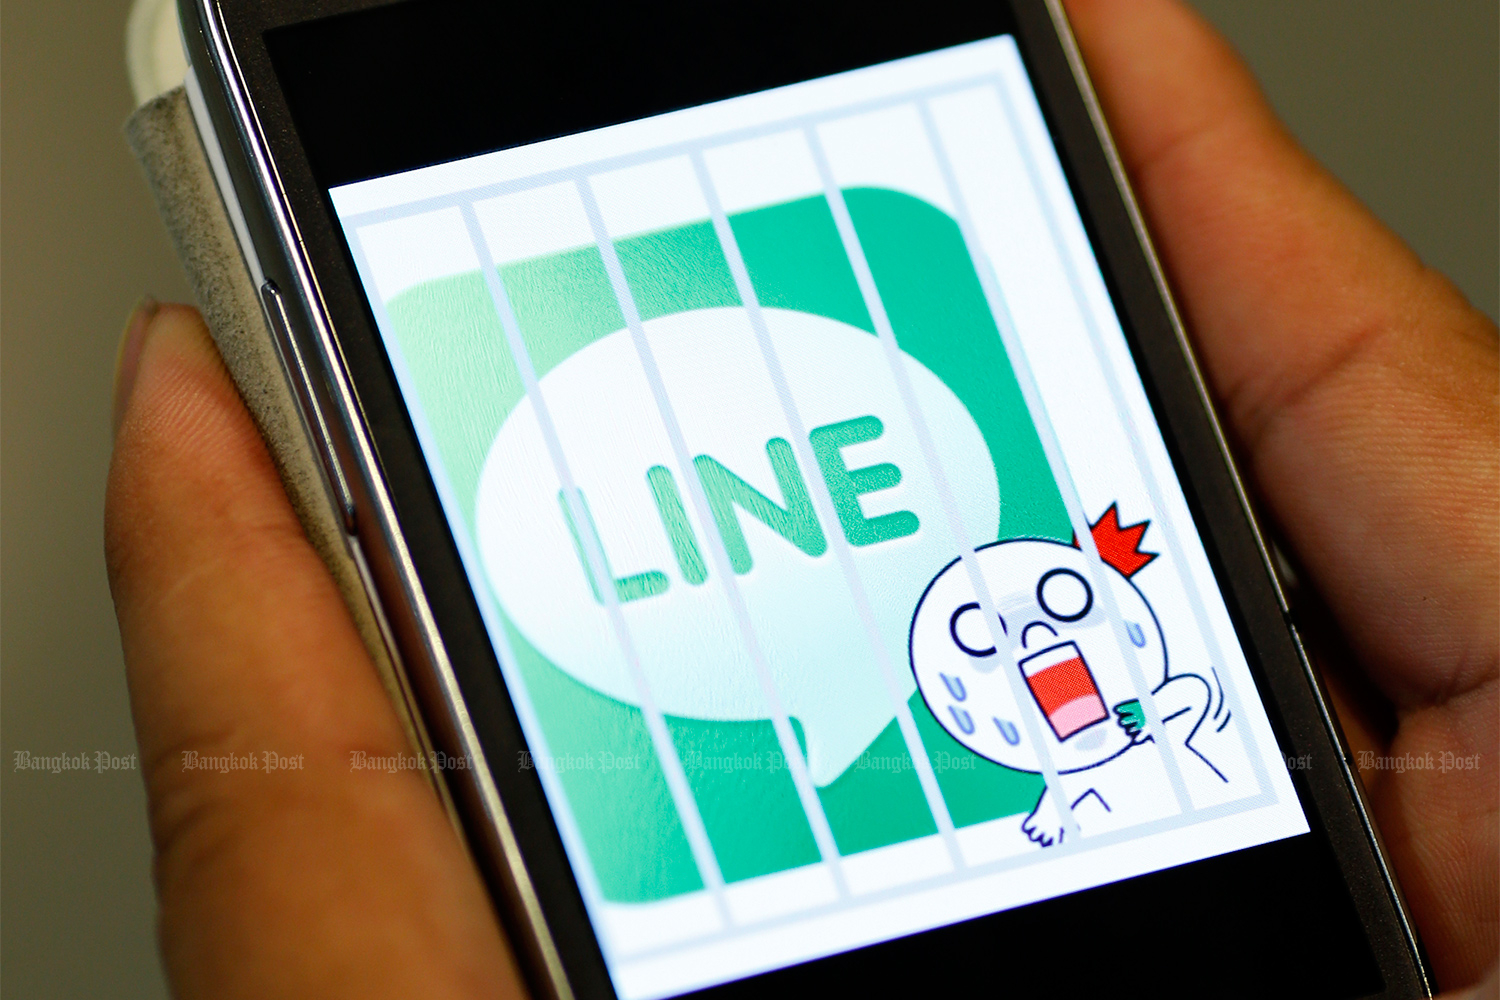 The Line messaging app was down for about 15 minutes on Monday. (Bangkok Post file photo)